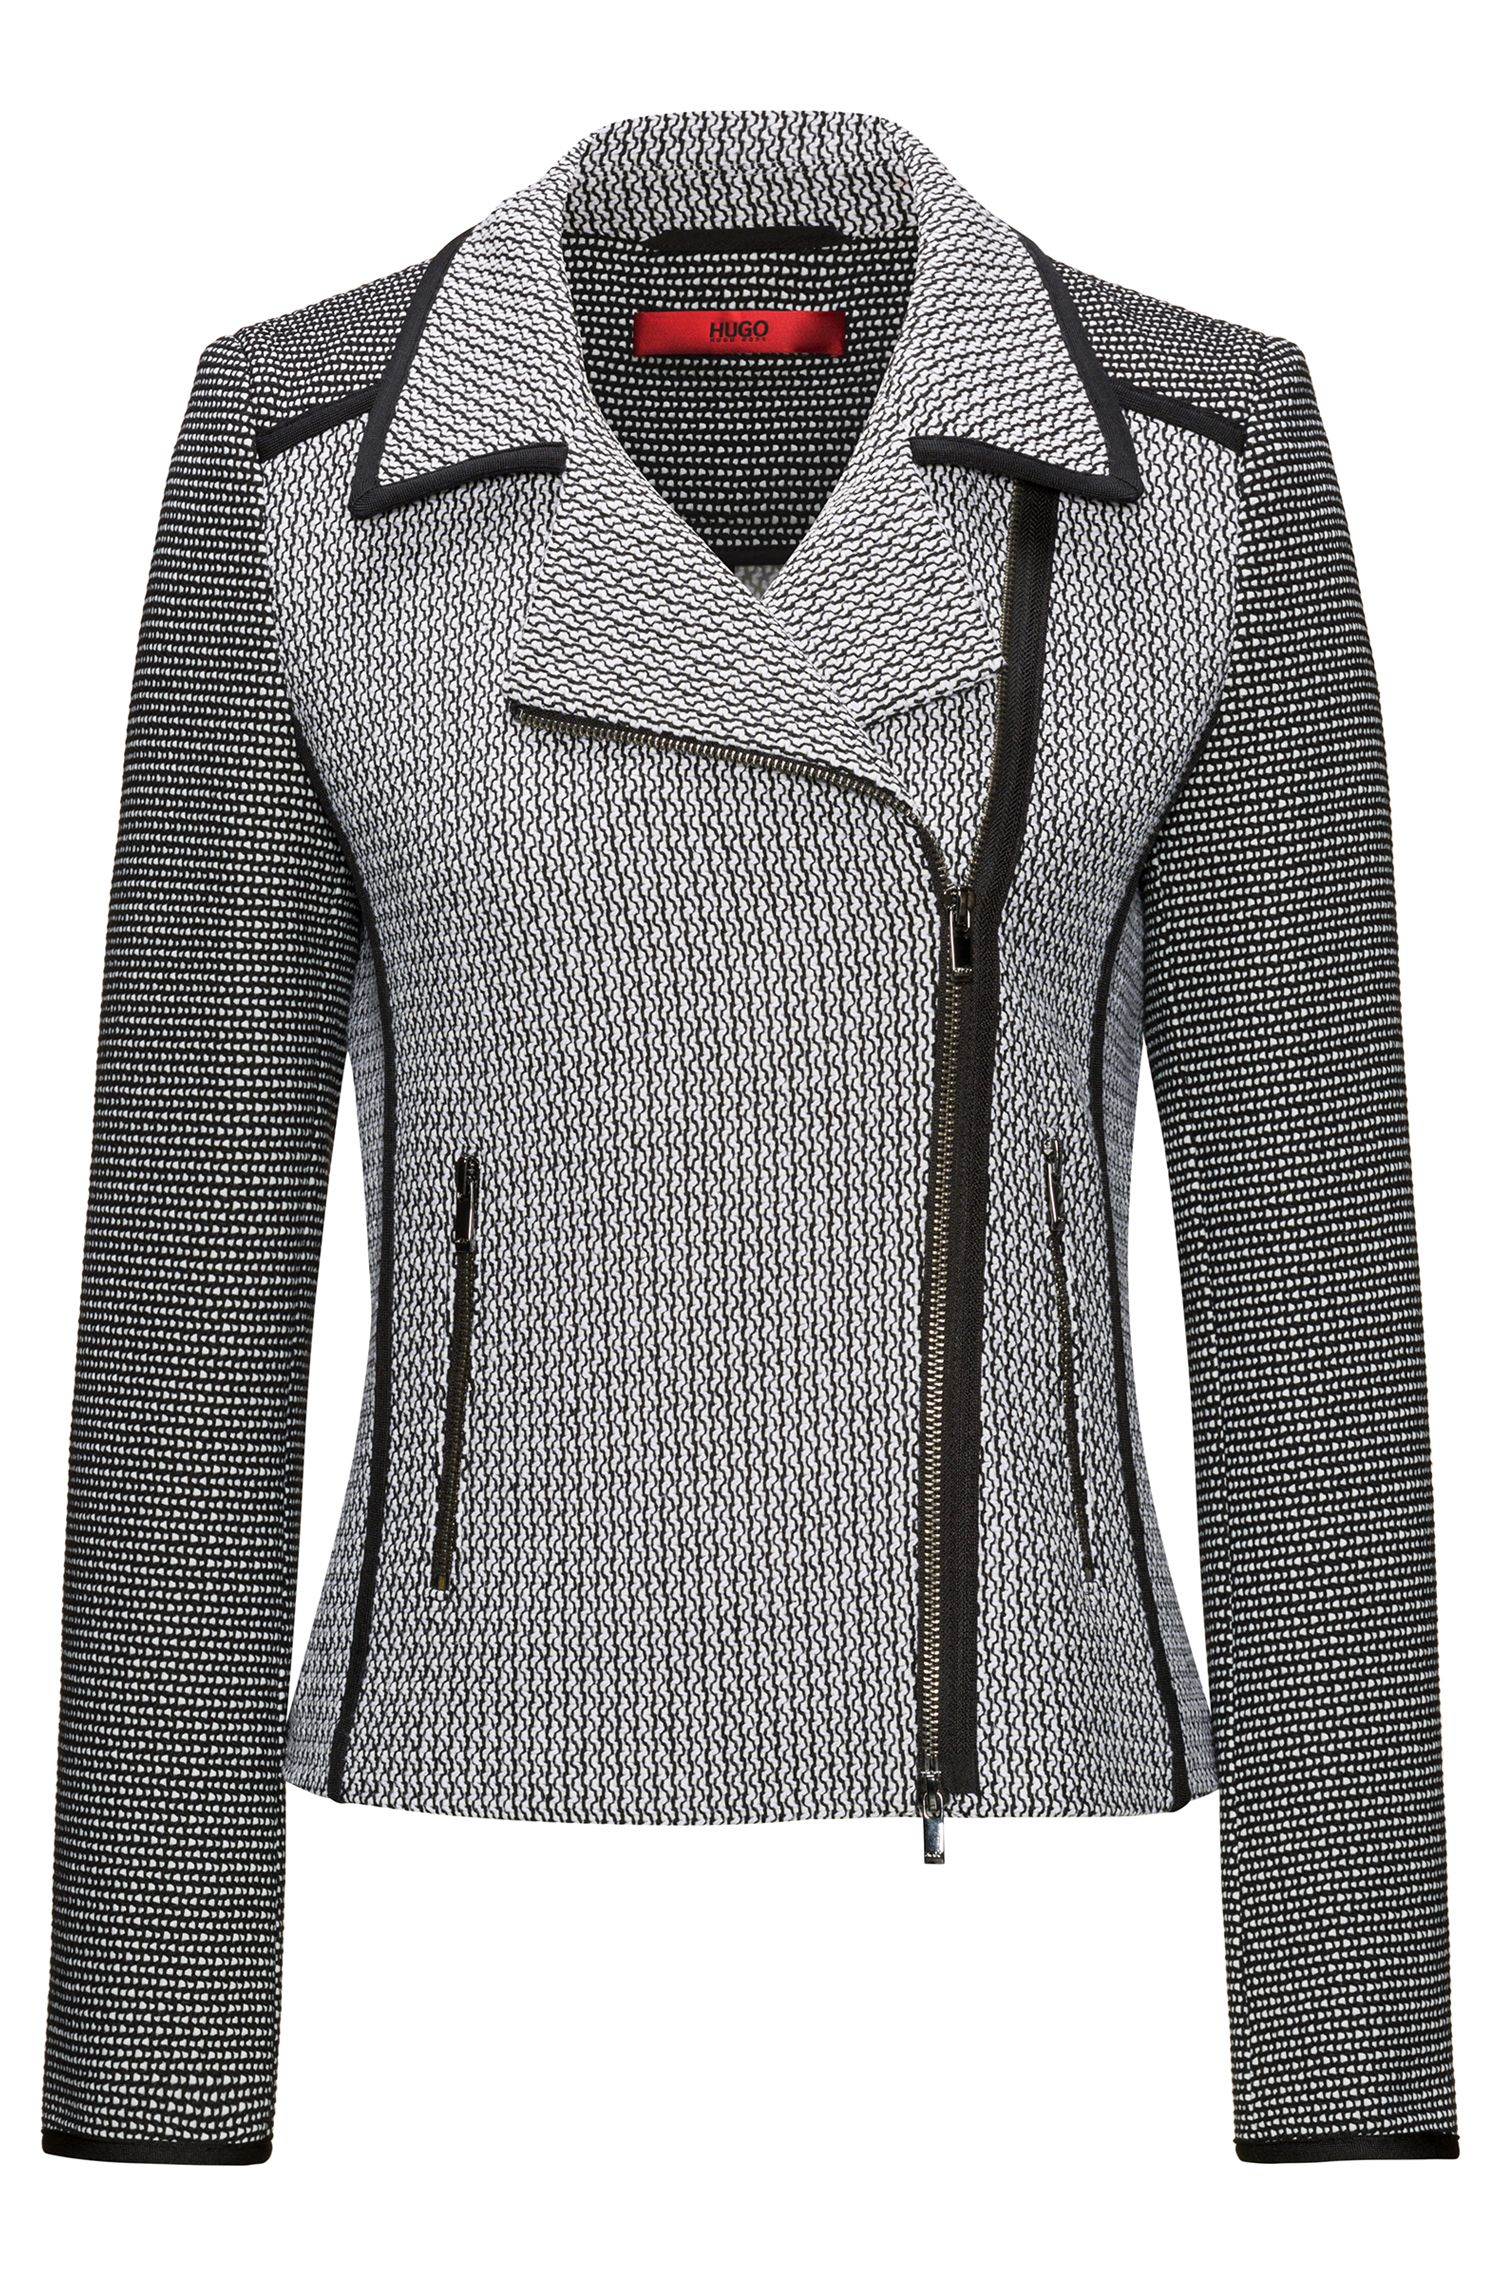 Patched tweed biker jacket with contrast piping